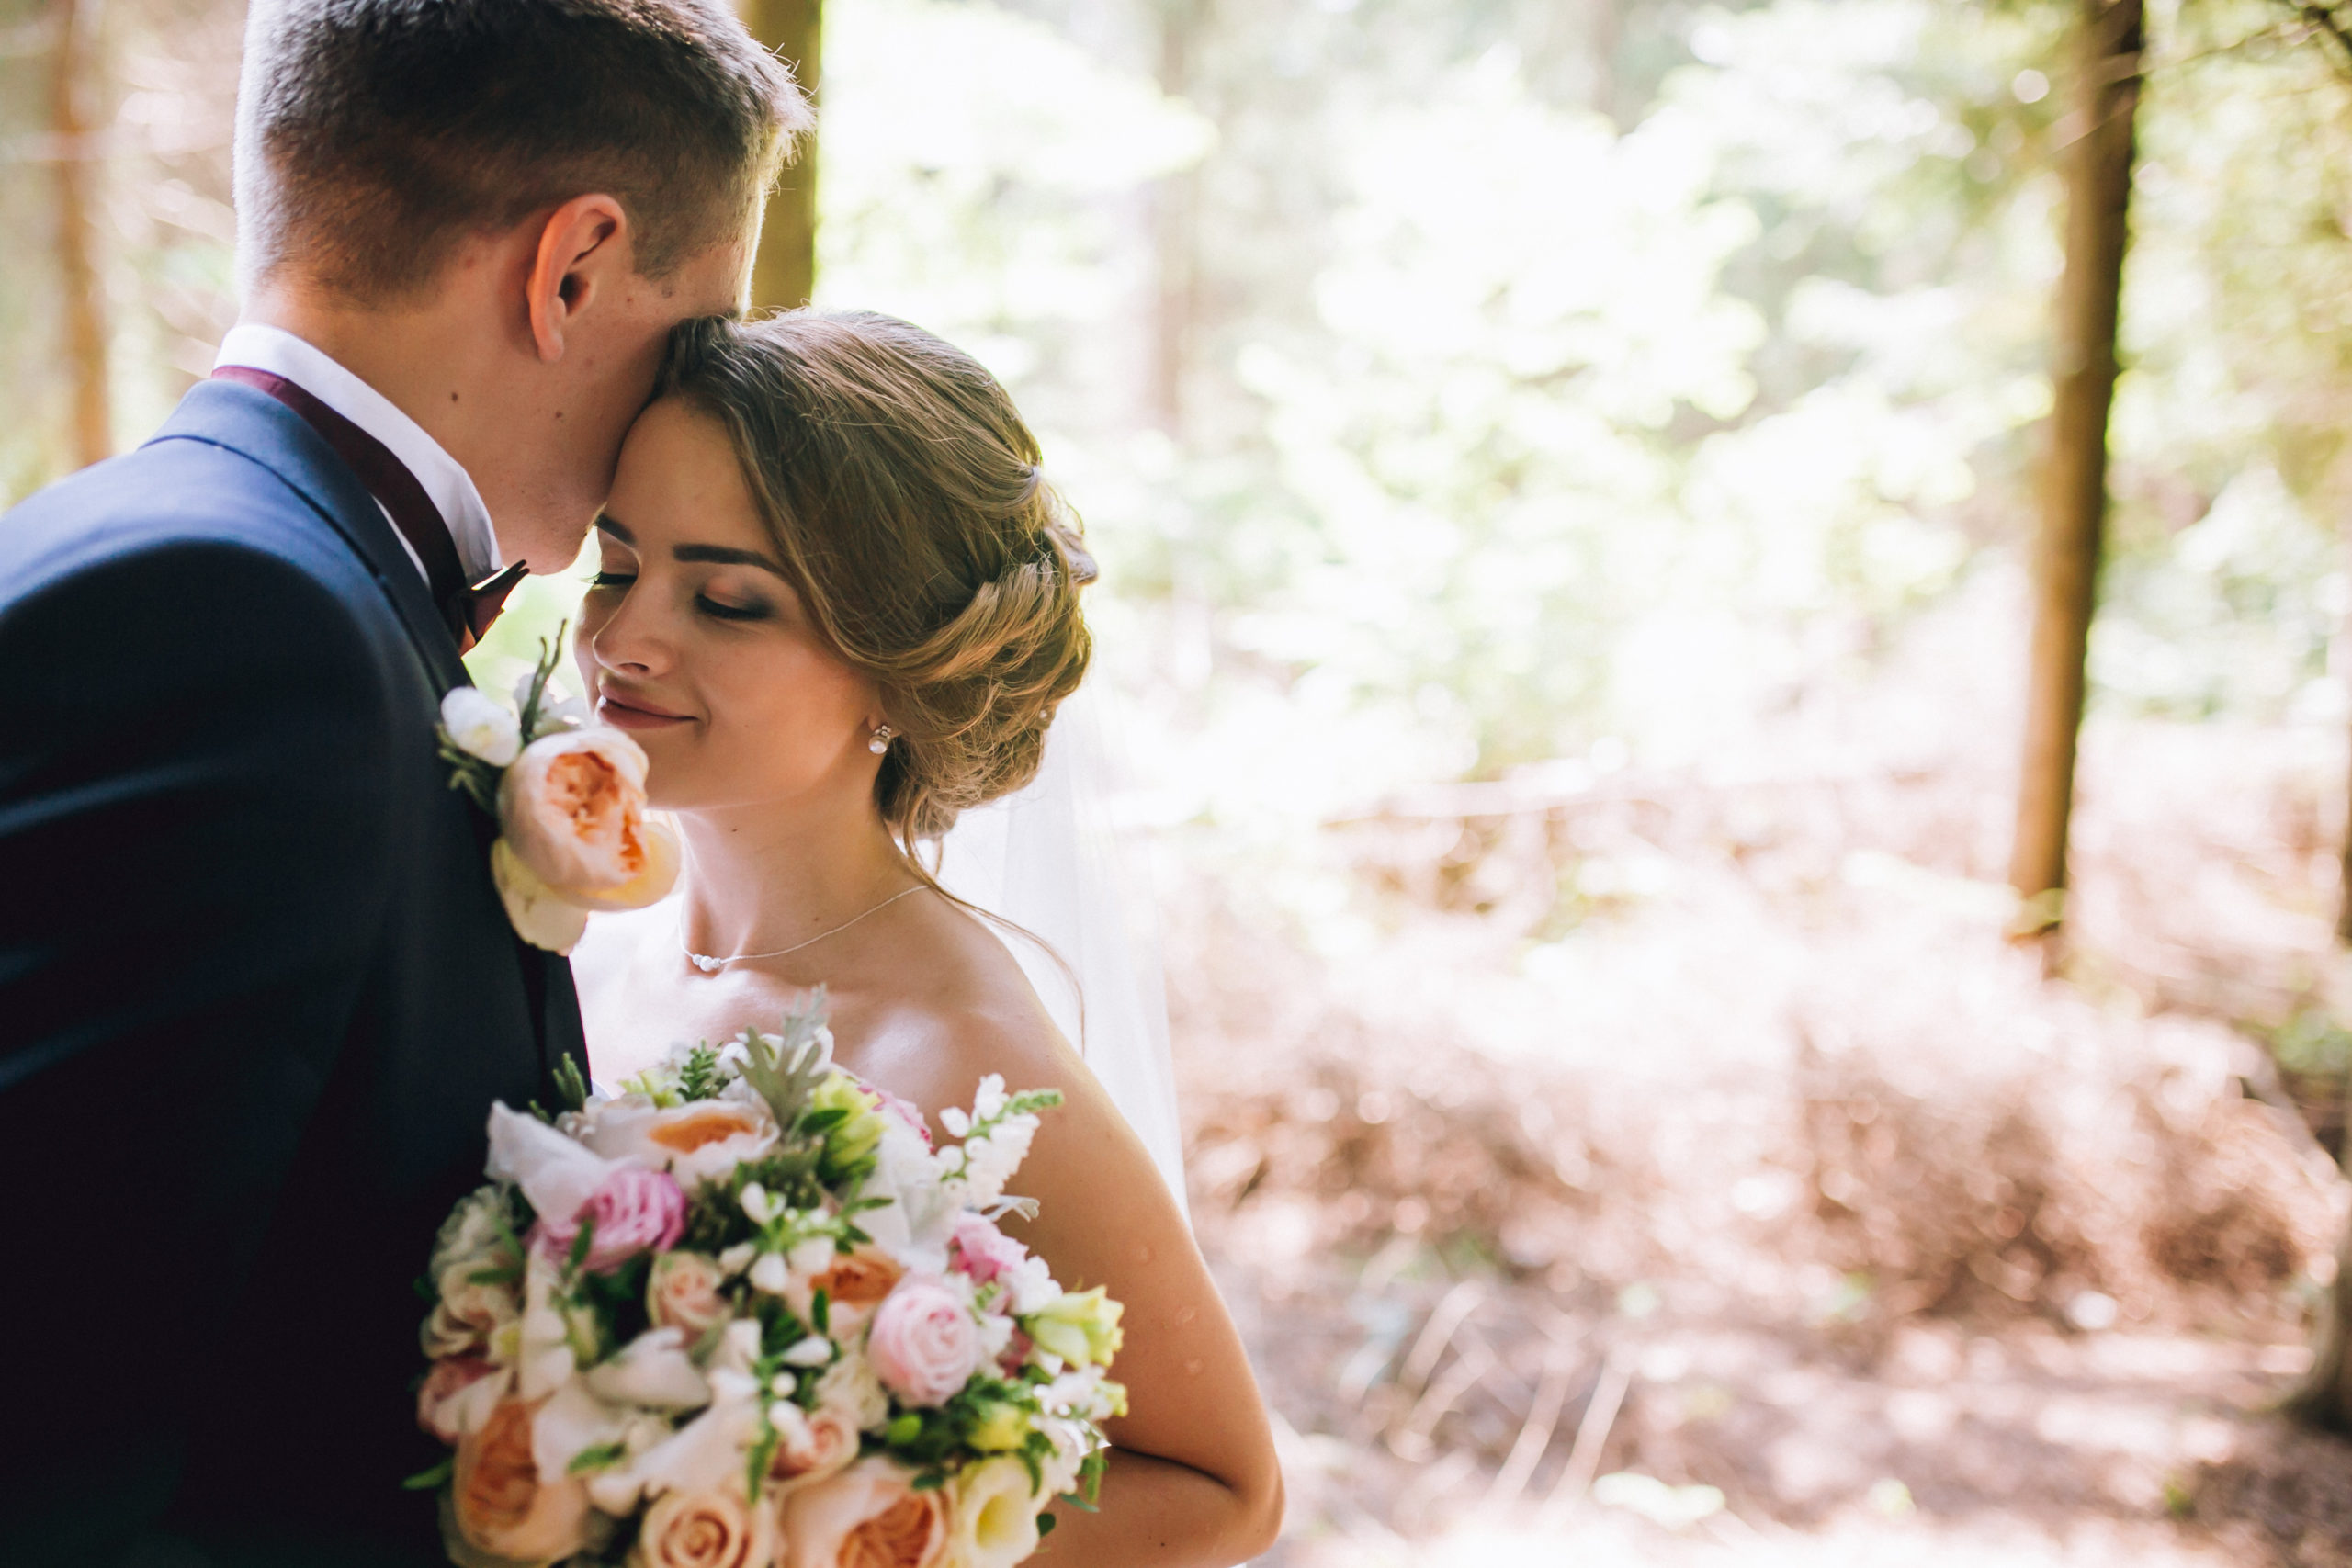 Bride,And,Groom,In,A,Park,Kissing.couple,Newlyweds,Bride,And